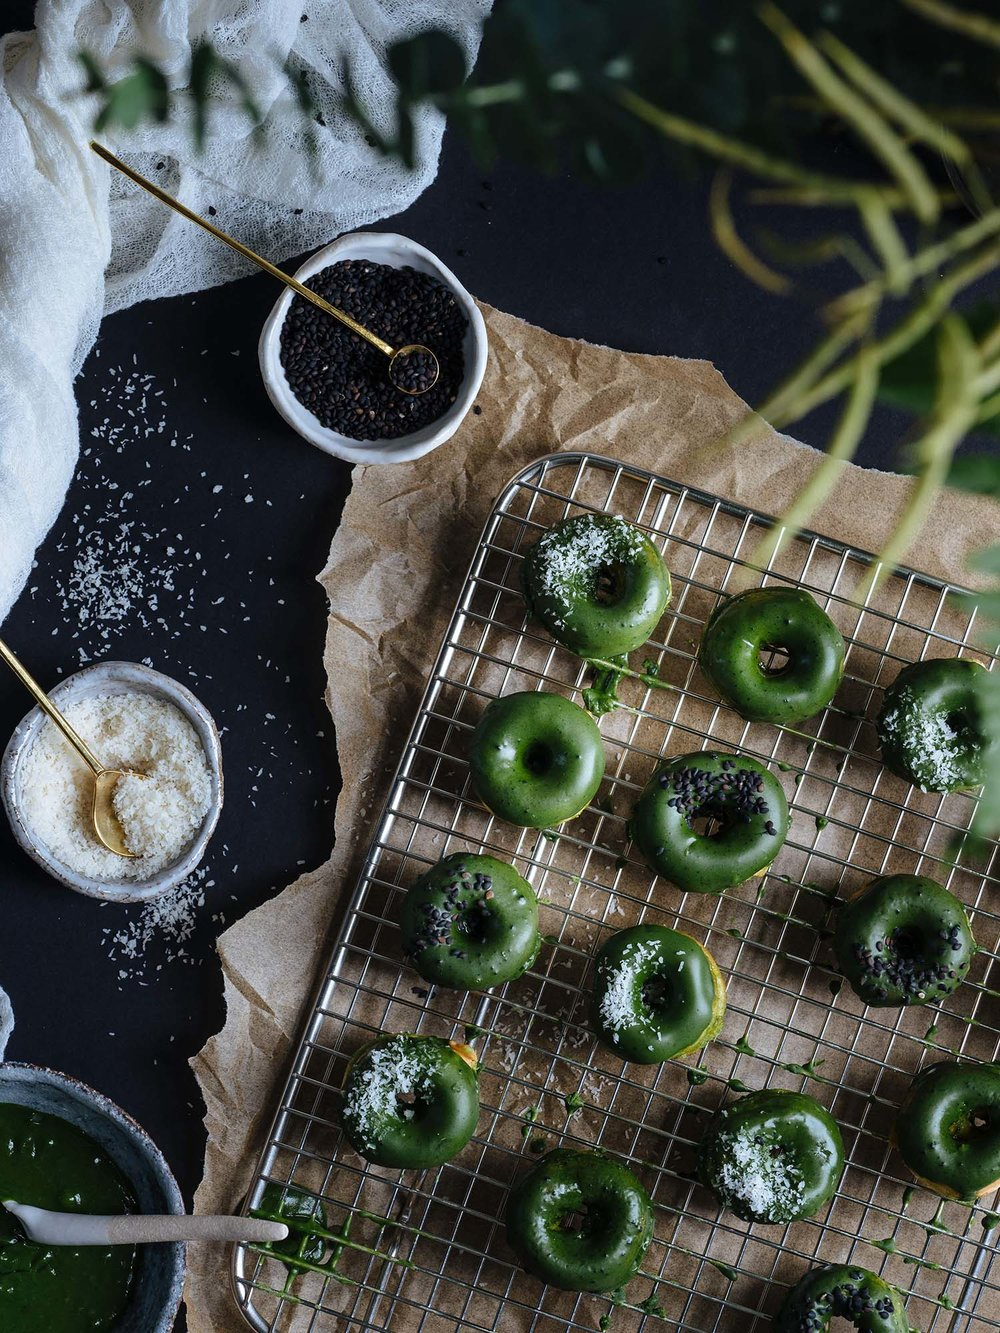 MATCHA hONUTS - 2 words. Matcha + honuts (healthier donuts) = bliss. Enough said